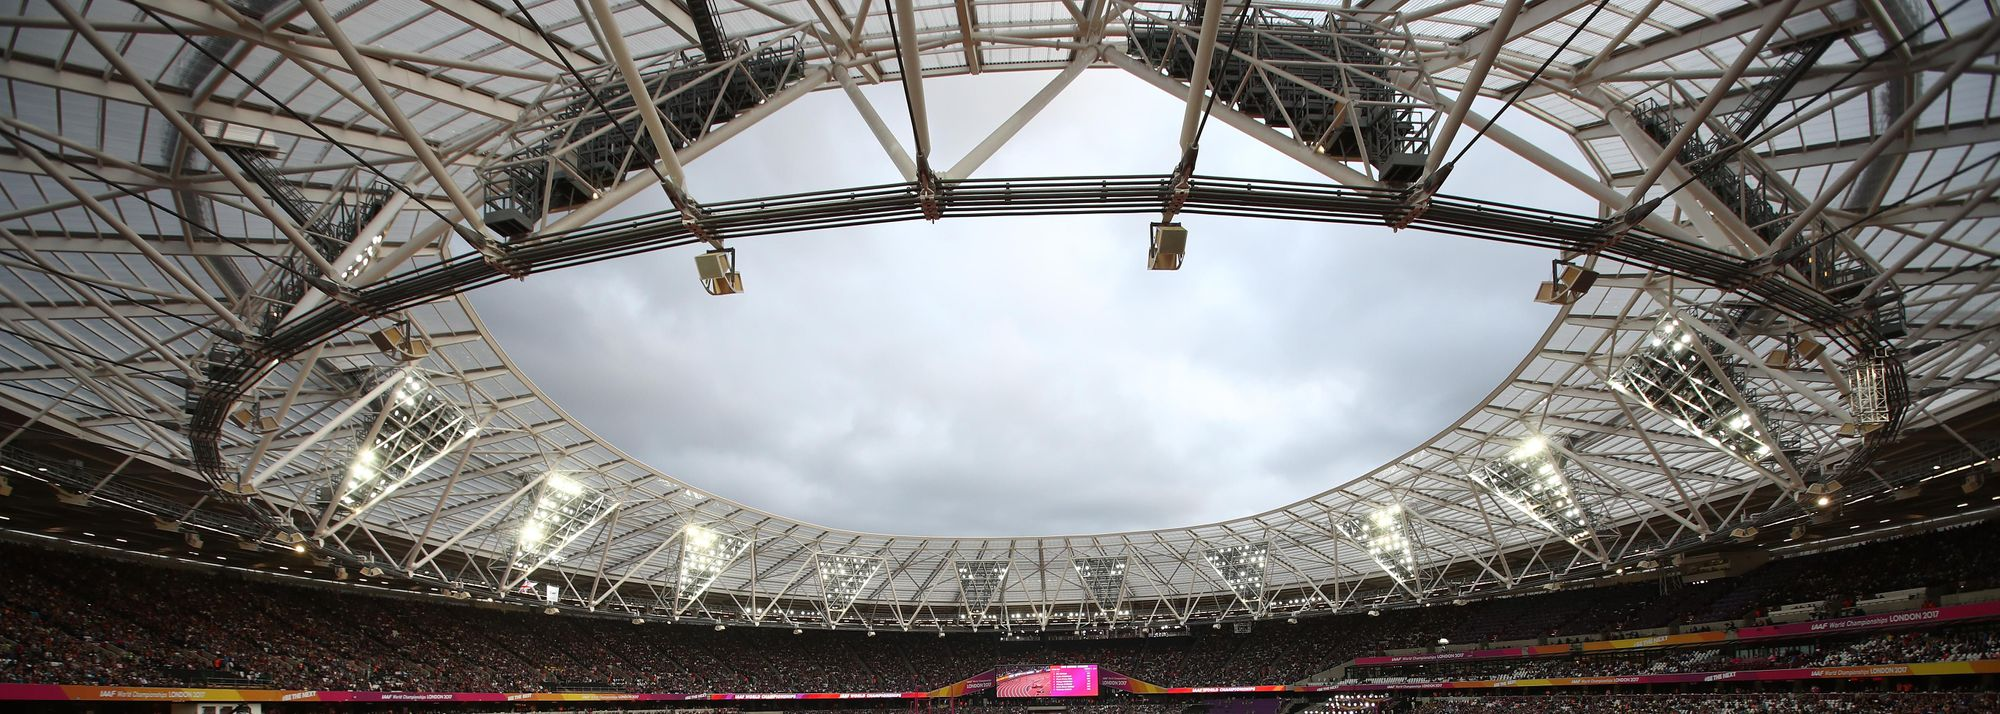 As the sporting calendar draws to an end, an event impact study has demonstrated the huge benefits of London hosting the world's biggest sporting event in 2017.